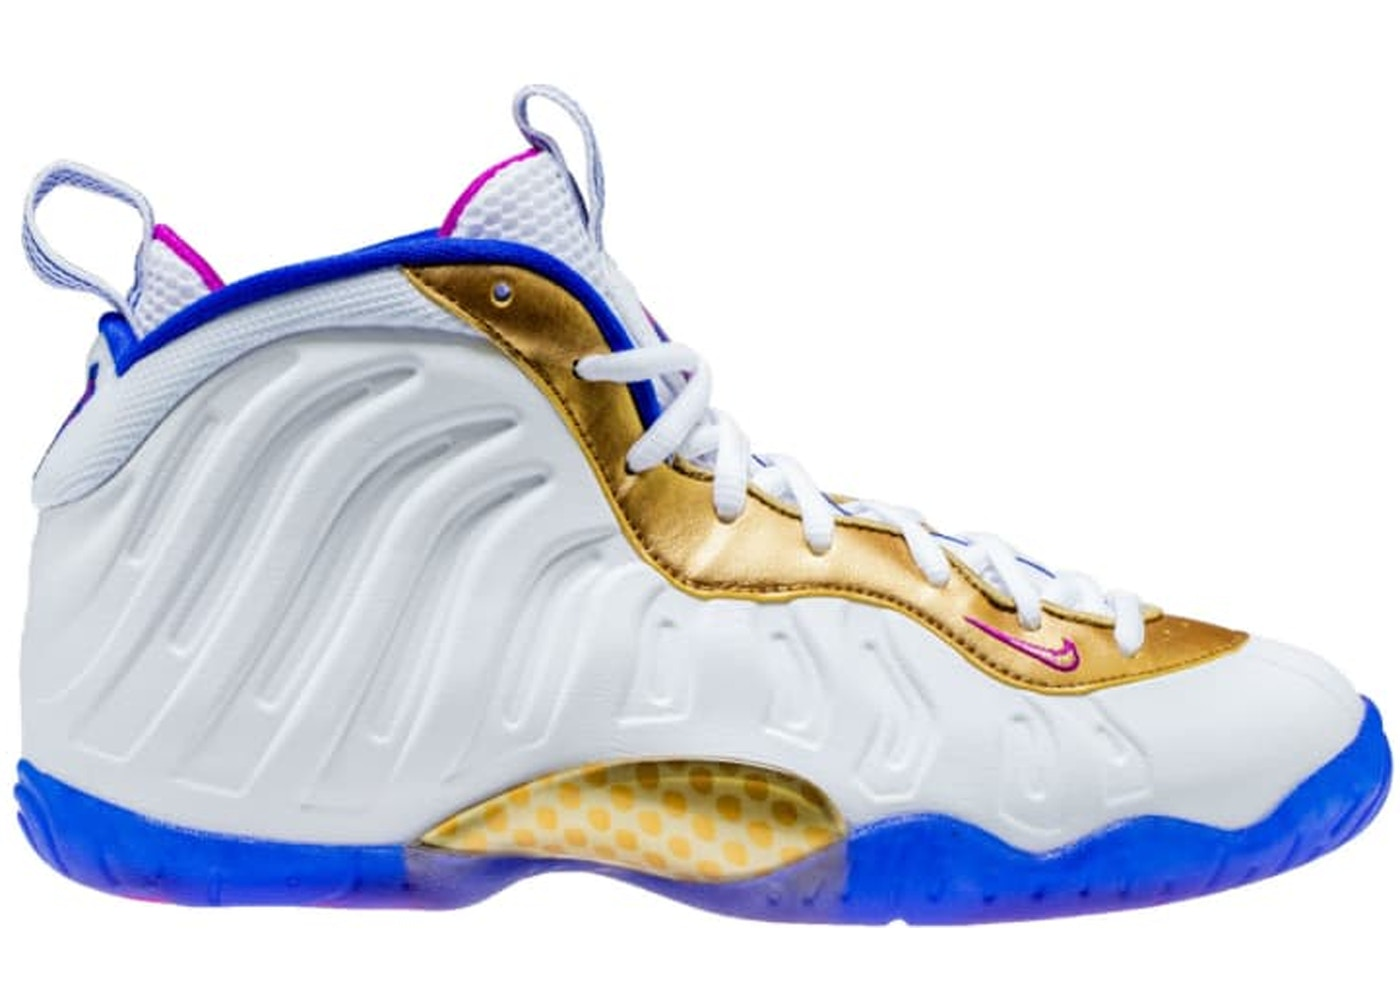 finest selection fa86e 3df7c Air Foamposite One Peanut Butter   Jelly (GS) - 644791-103